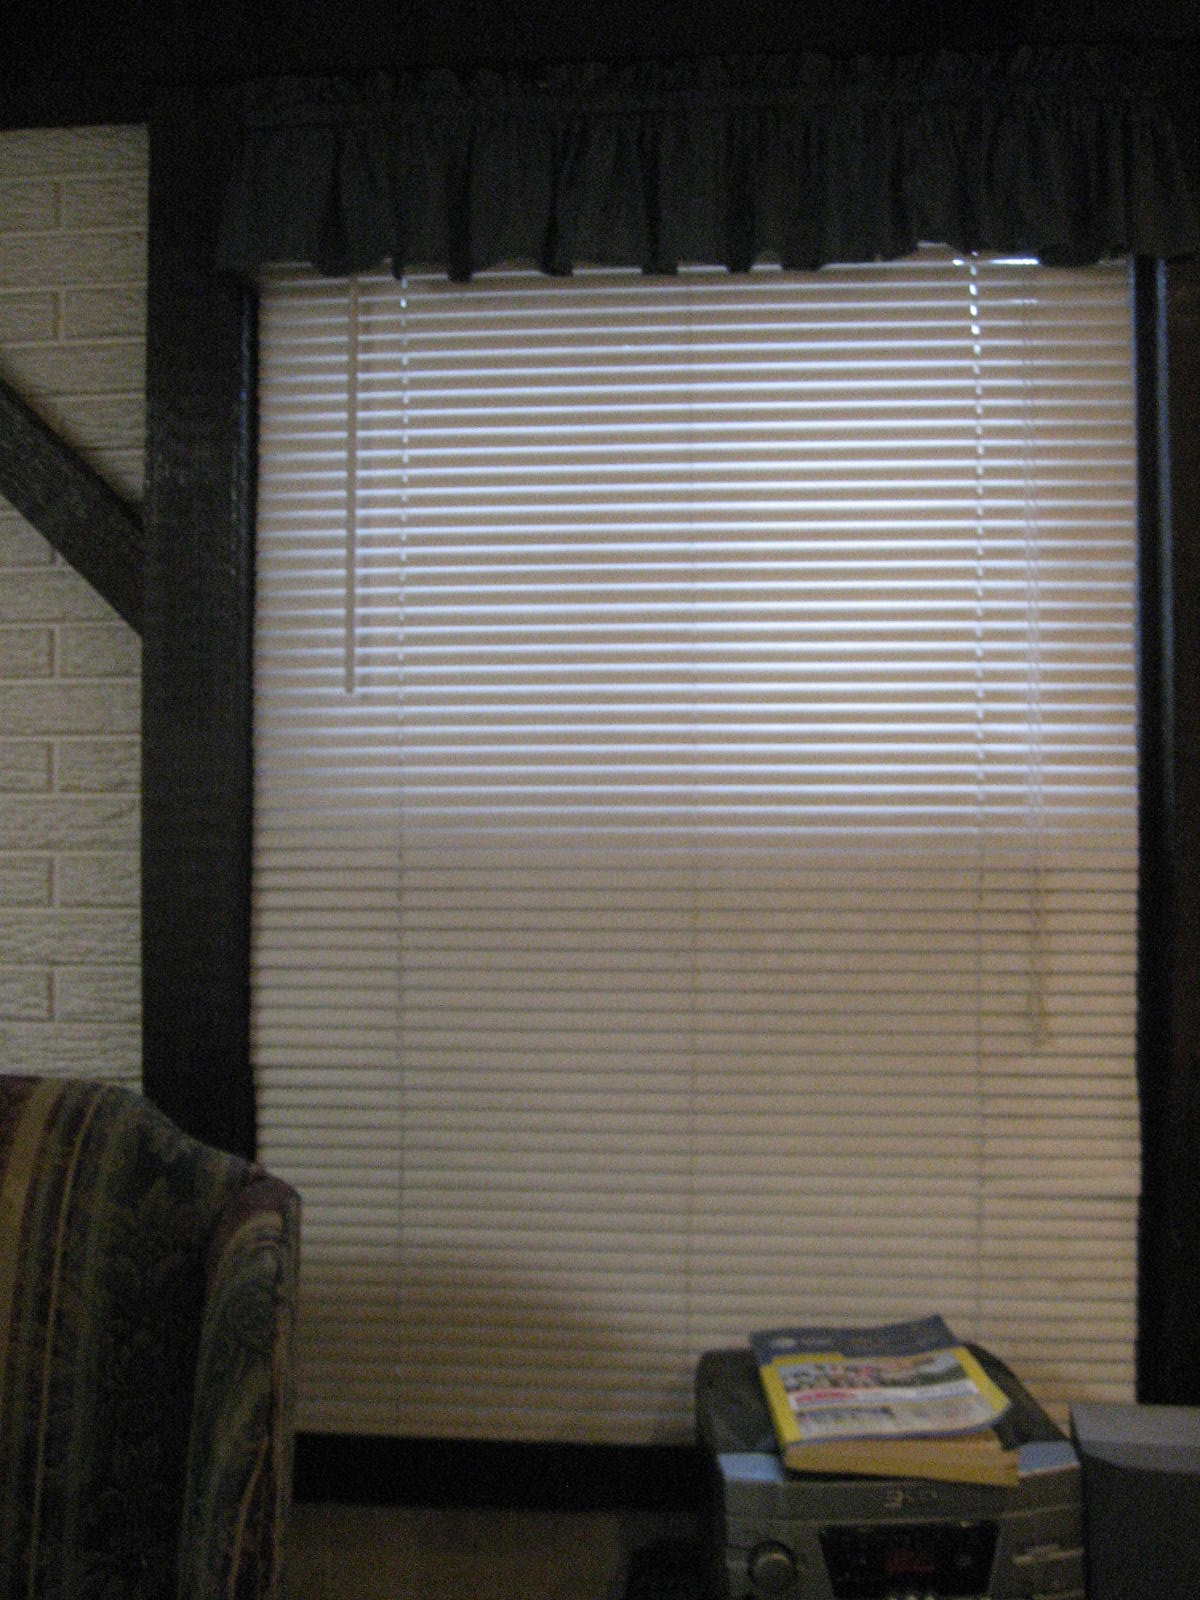 Basement Blinds Rubies Running Roman Shades From Old Mini Blinds